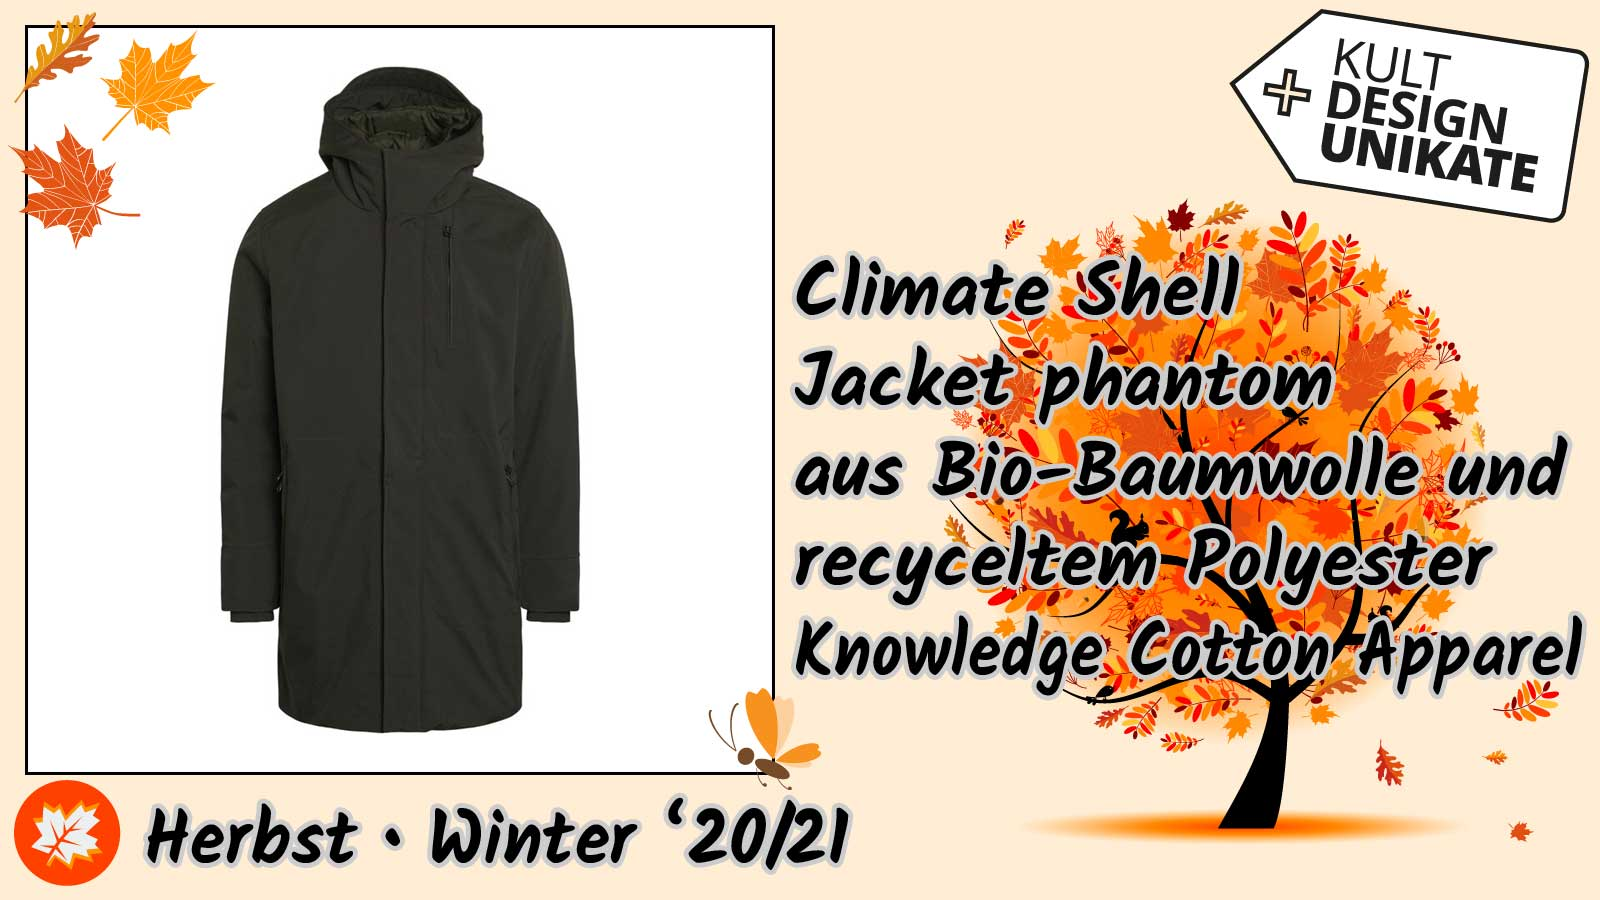 KCA-Climate-Shell-Jacket-phantom